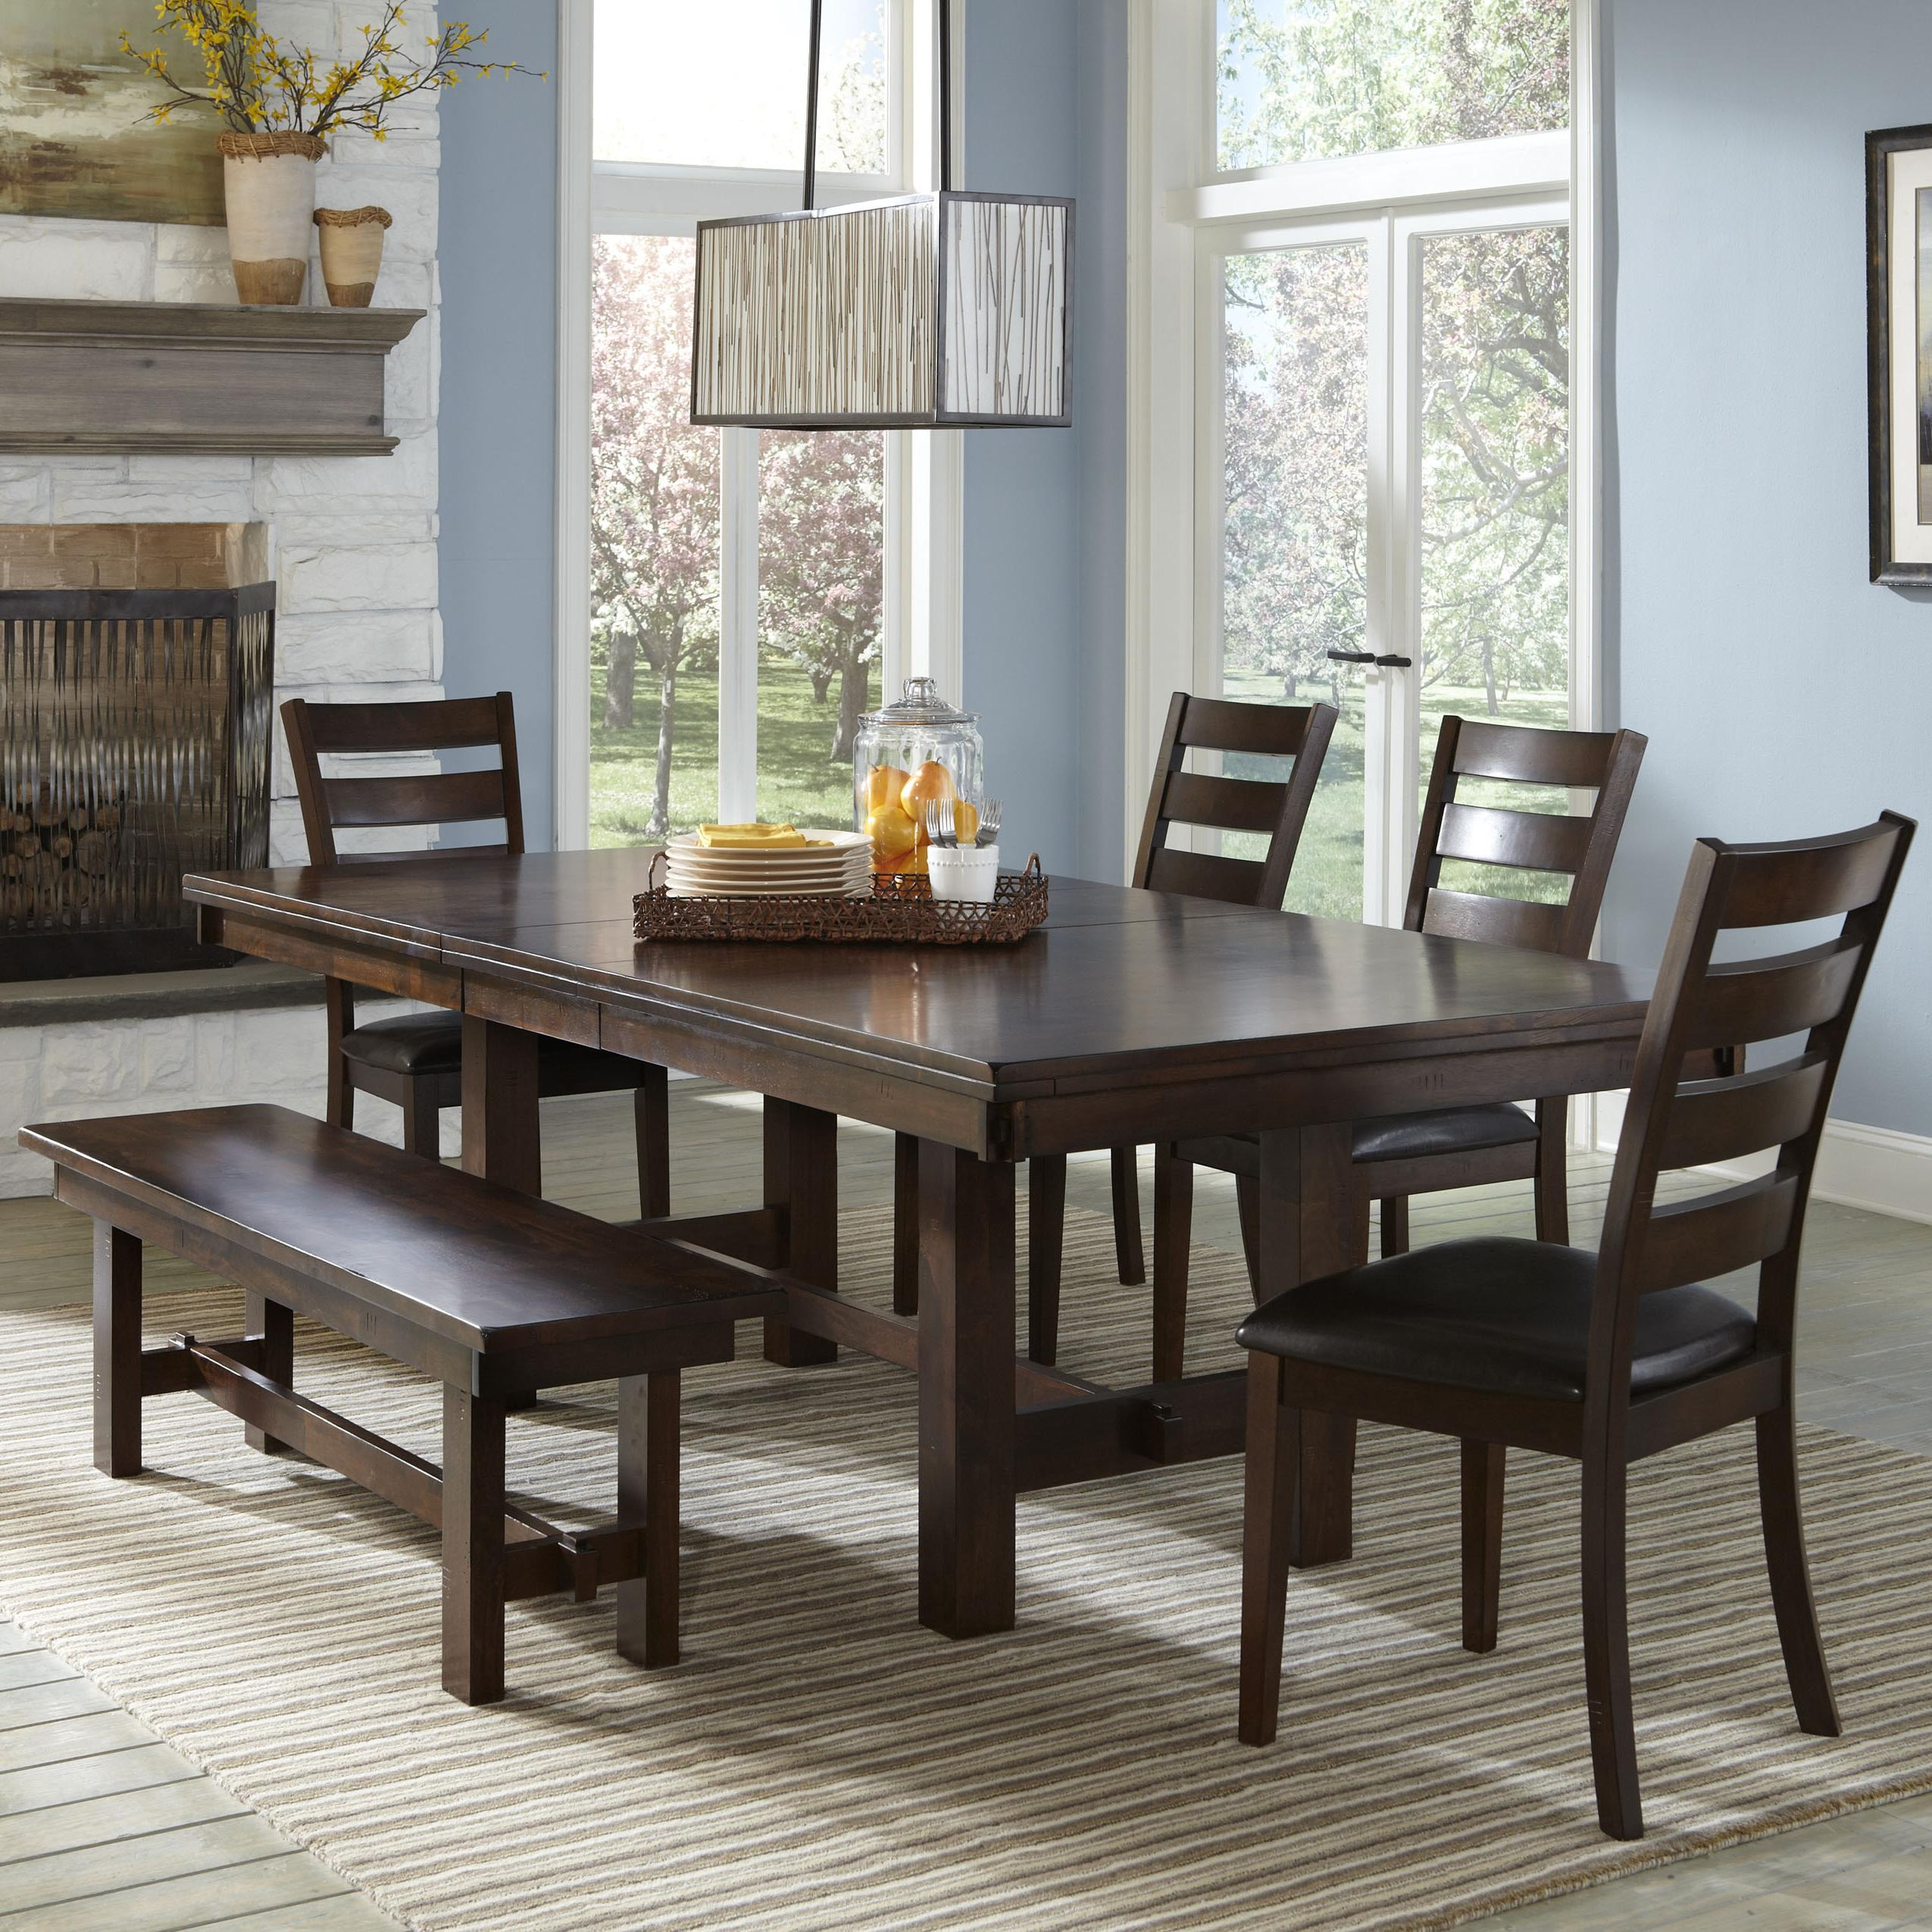 Intercon Kona Solid Mango Wood Dining Table with Butterfly Leaf ...